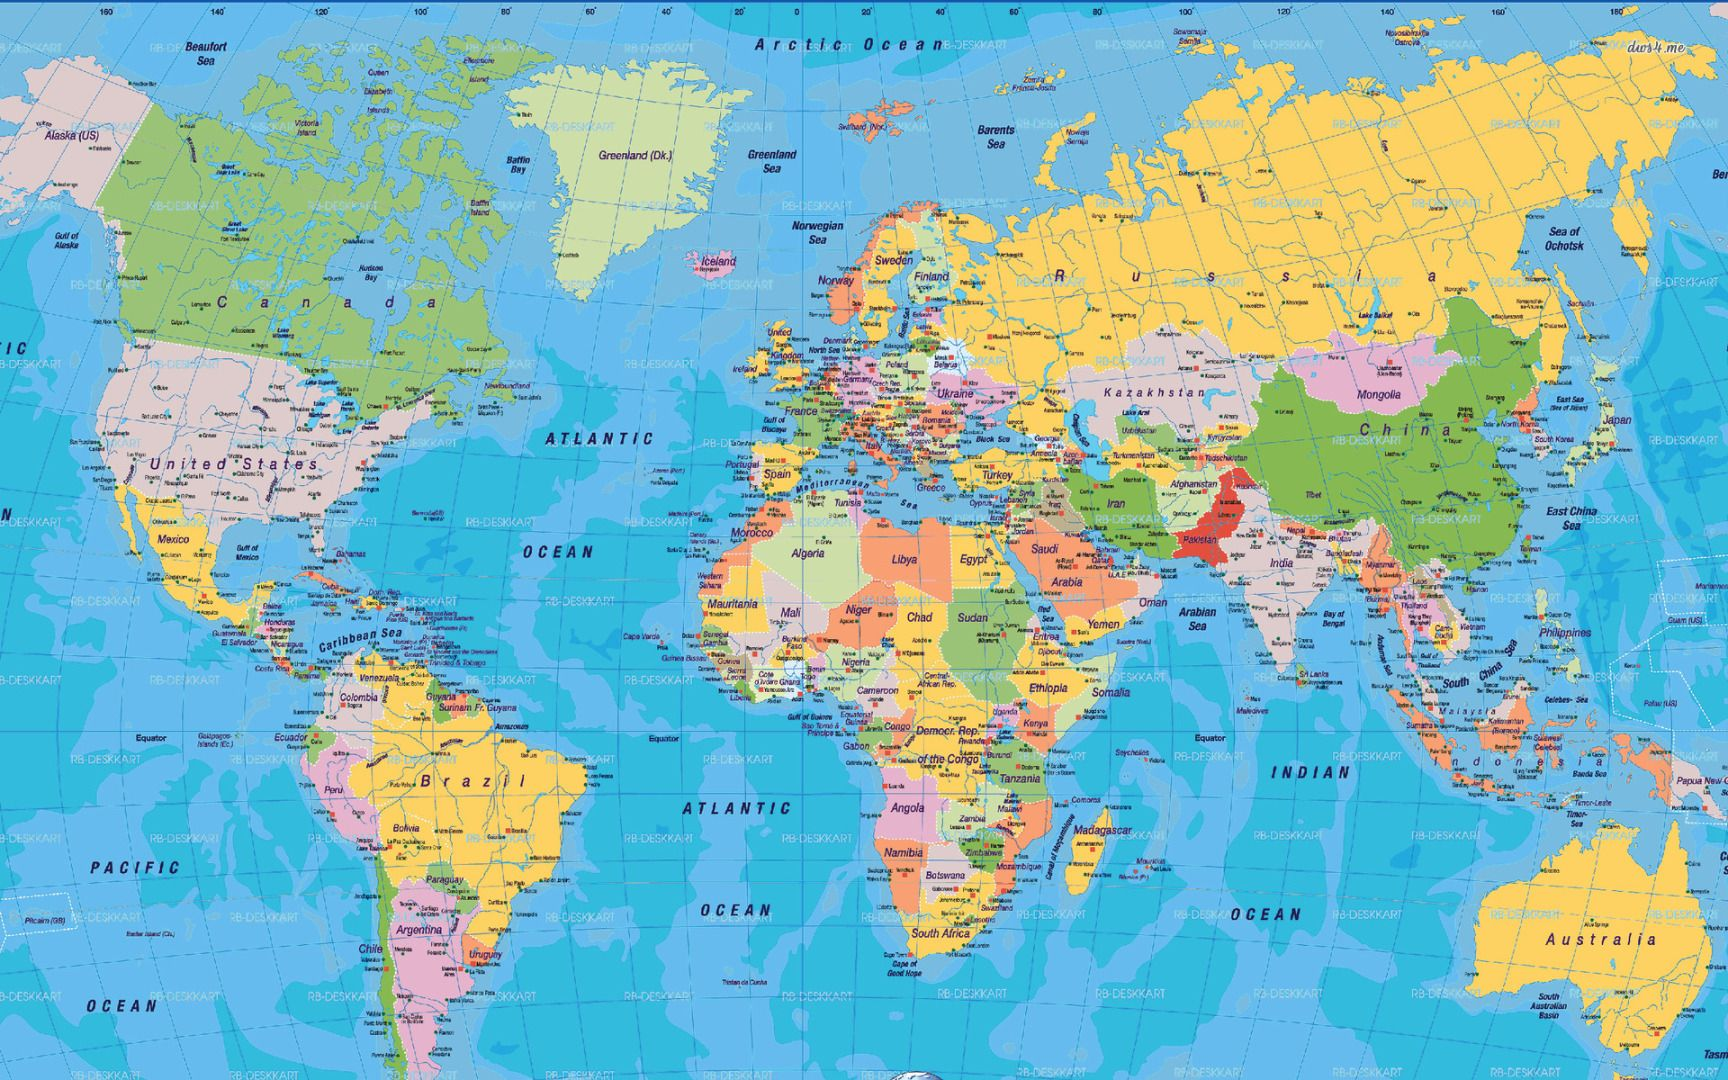 World map 11 10112014 top wallpapers best wallpapers hd free world map 11 10112014 top wallpapers best wallpapers hd free wallpapers backgrounds images fhd 4k download 2014 2015 2016 gumiabroncs Choice Image